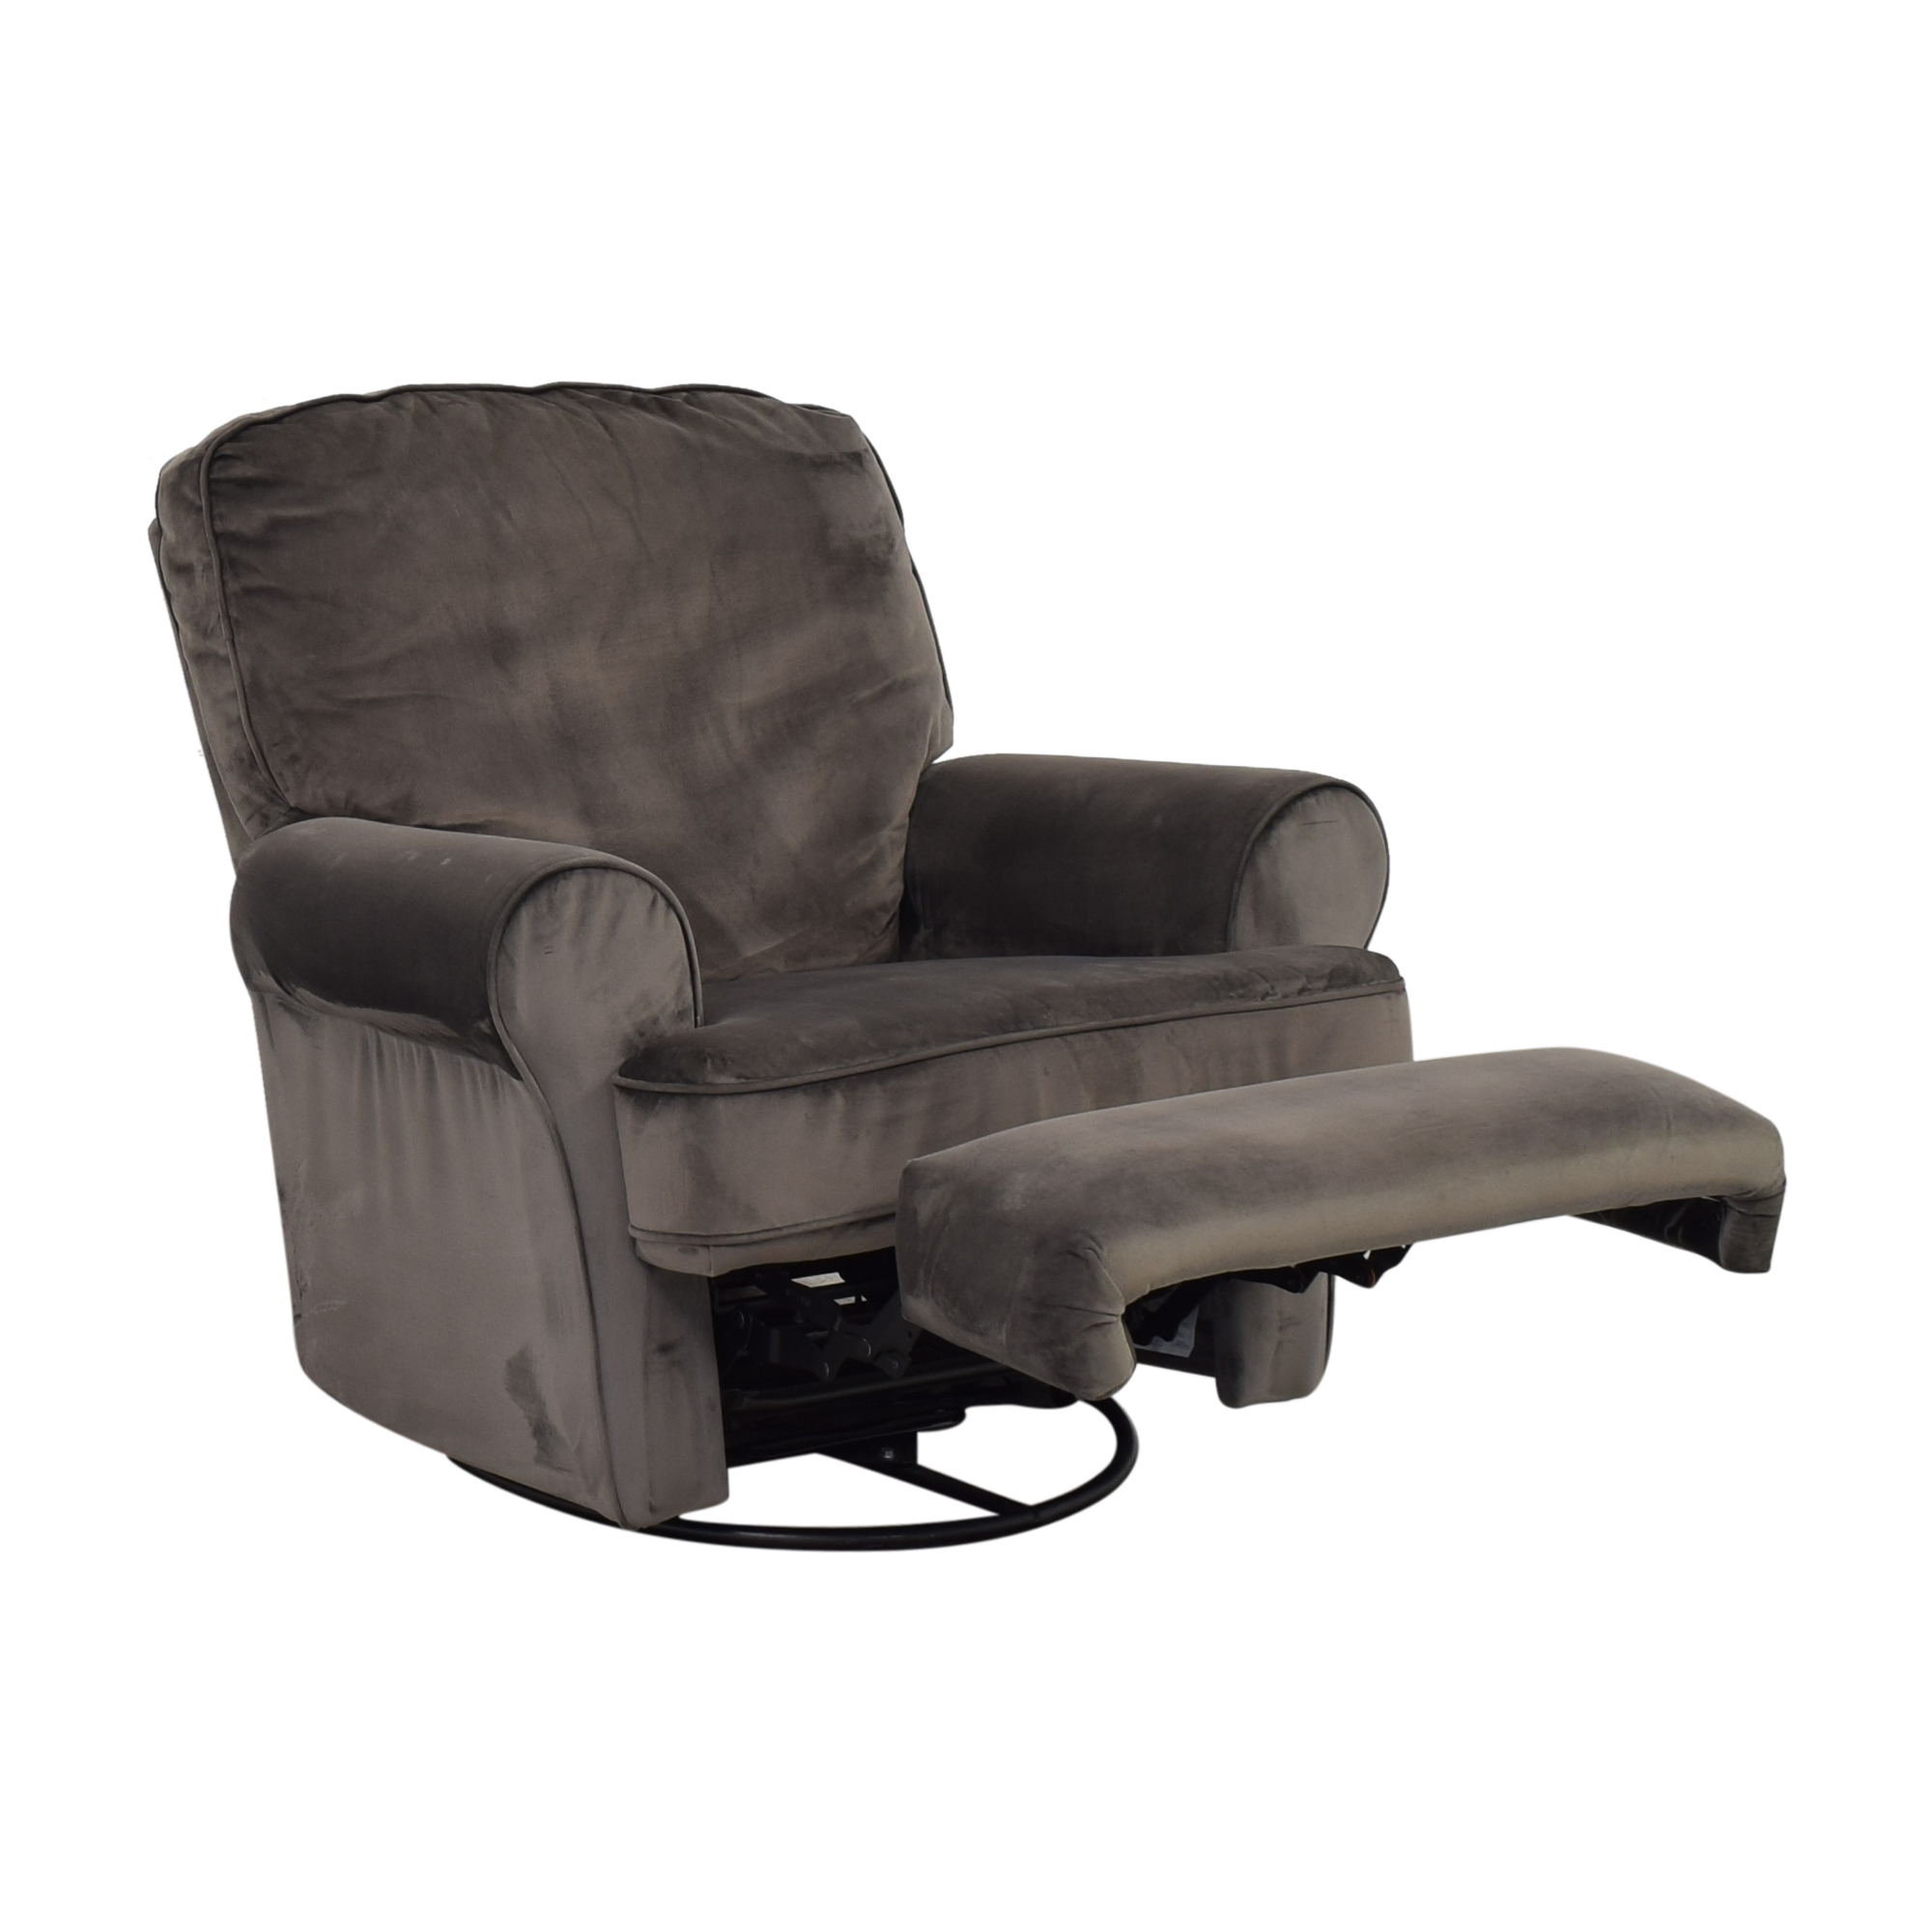 buy Best Chairs Tryp Swivel Glider Recliner Best Chairs